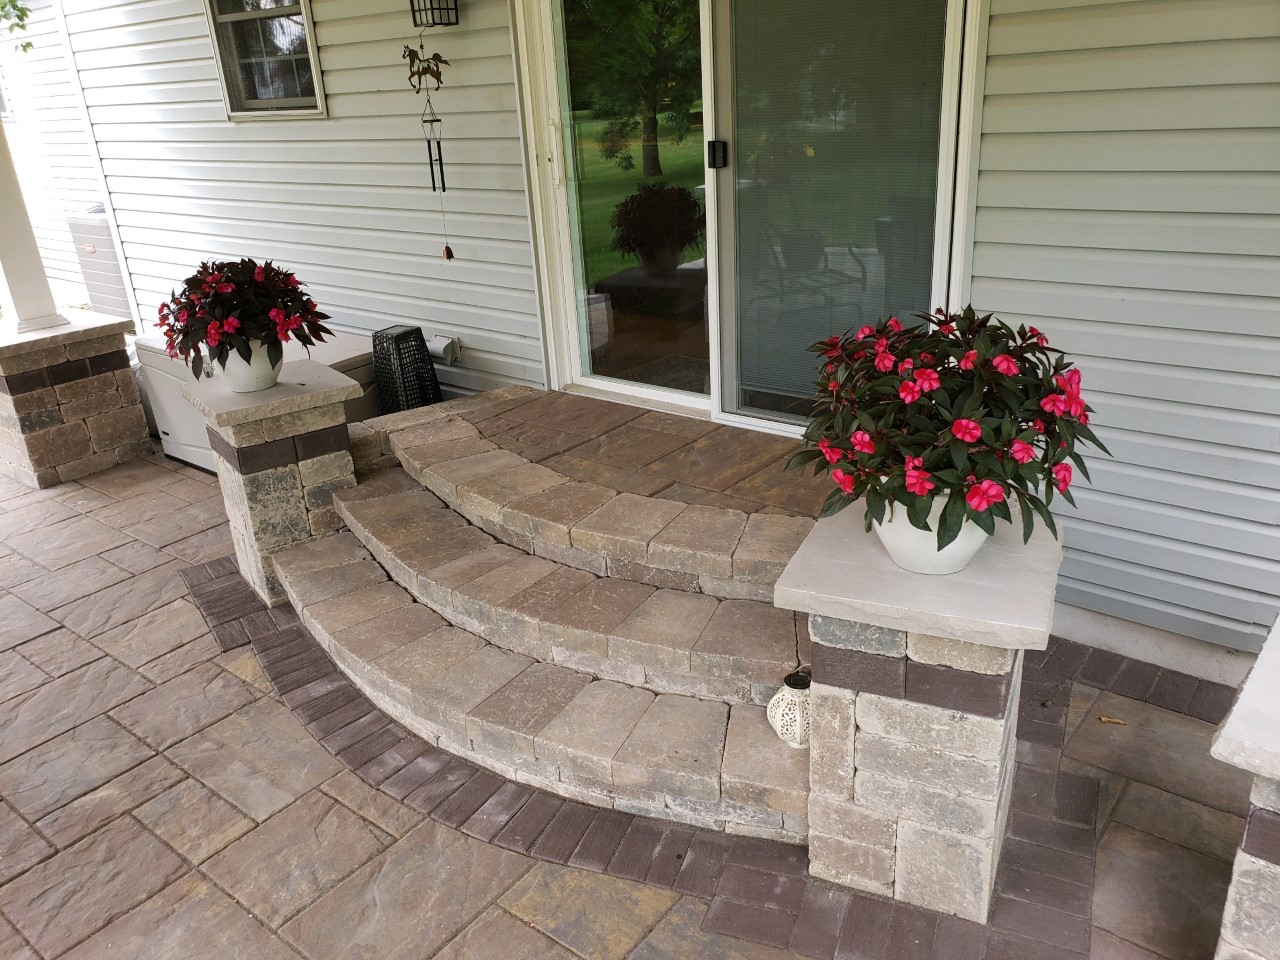 Beautiful-wide-curved-hardscape-steps-were-used-to-access-the-home-from-the-covered-patio